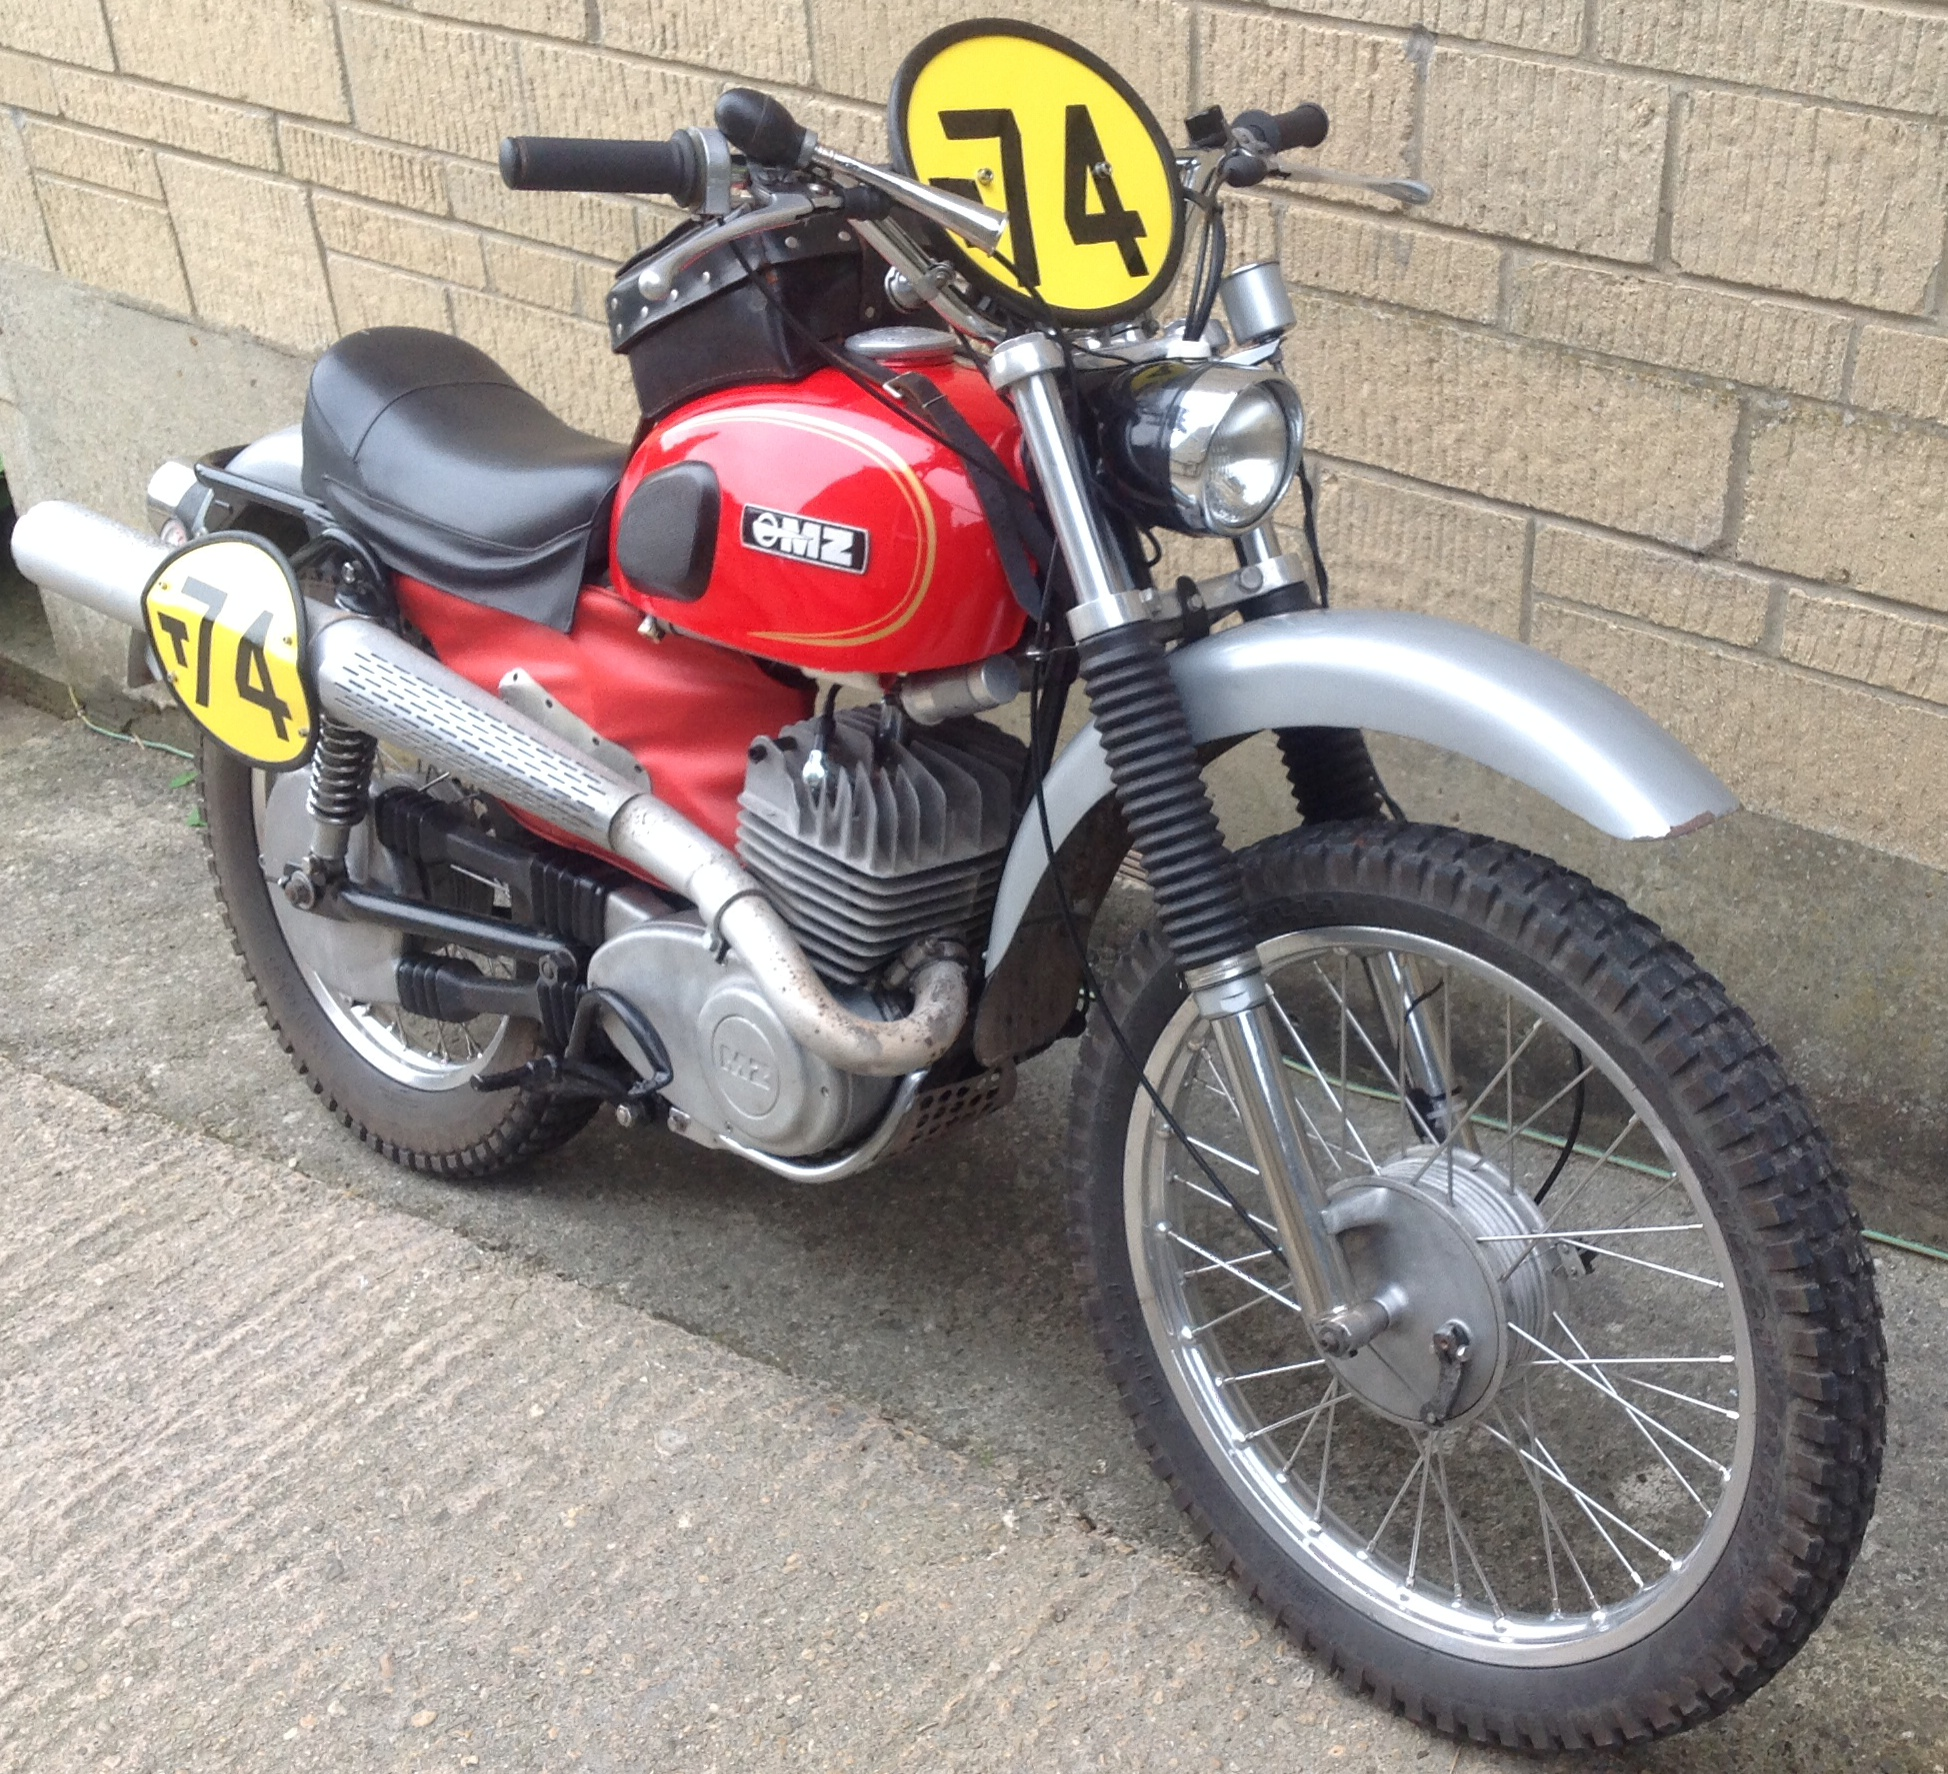 Isdt 1975 Isle Of Man Speed Track Tales 1970 Honda 75cc Motorcycle Photo Restored Mz 250